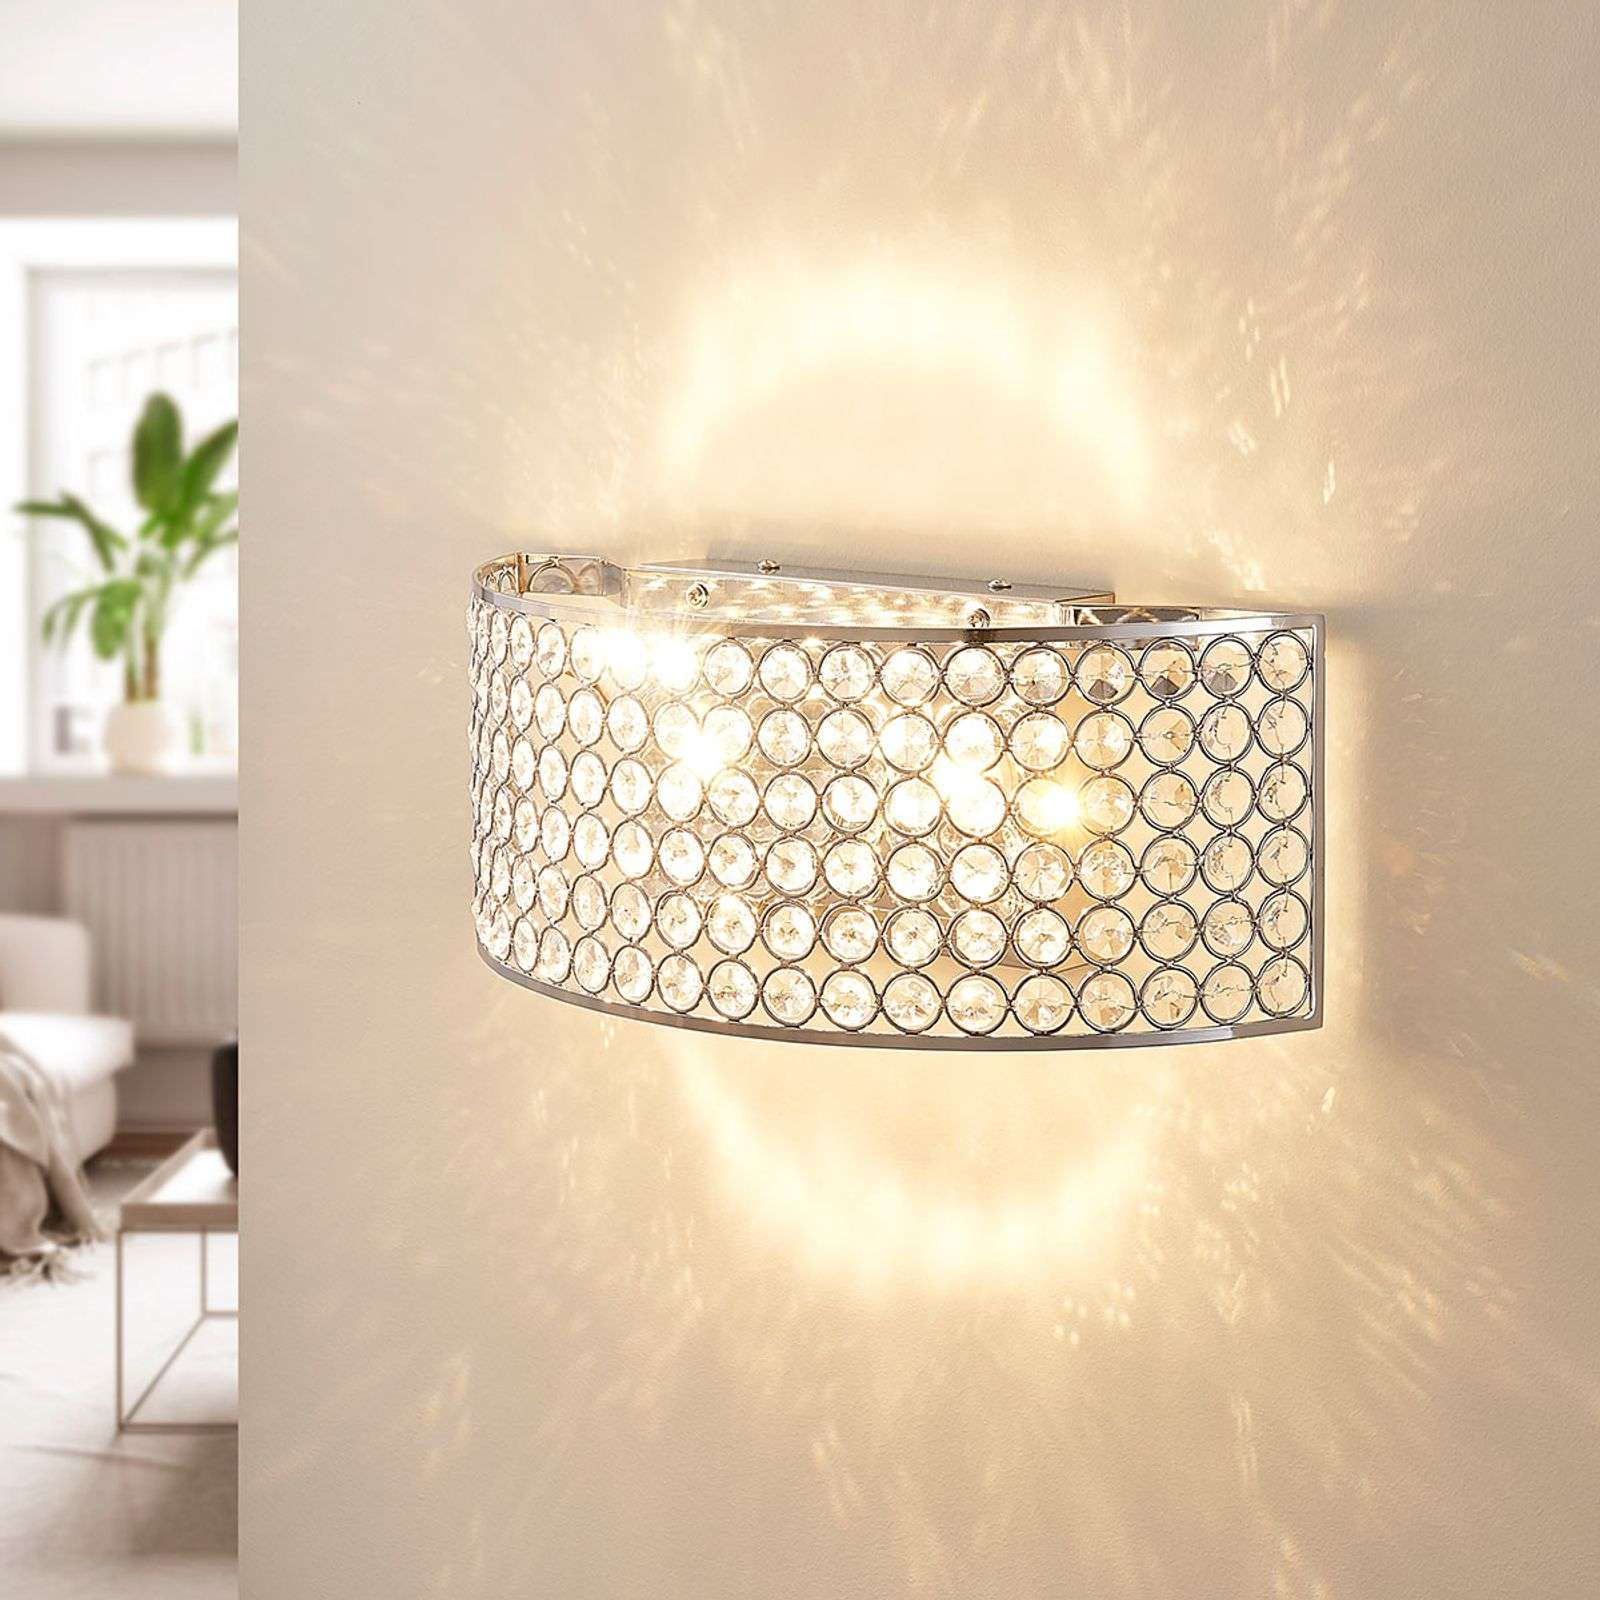 Applique a LED Alizee in cristallo di vetro, cromo